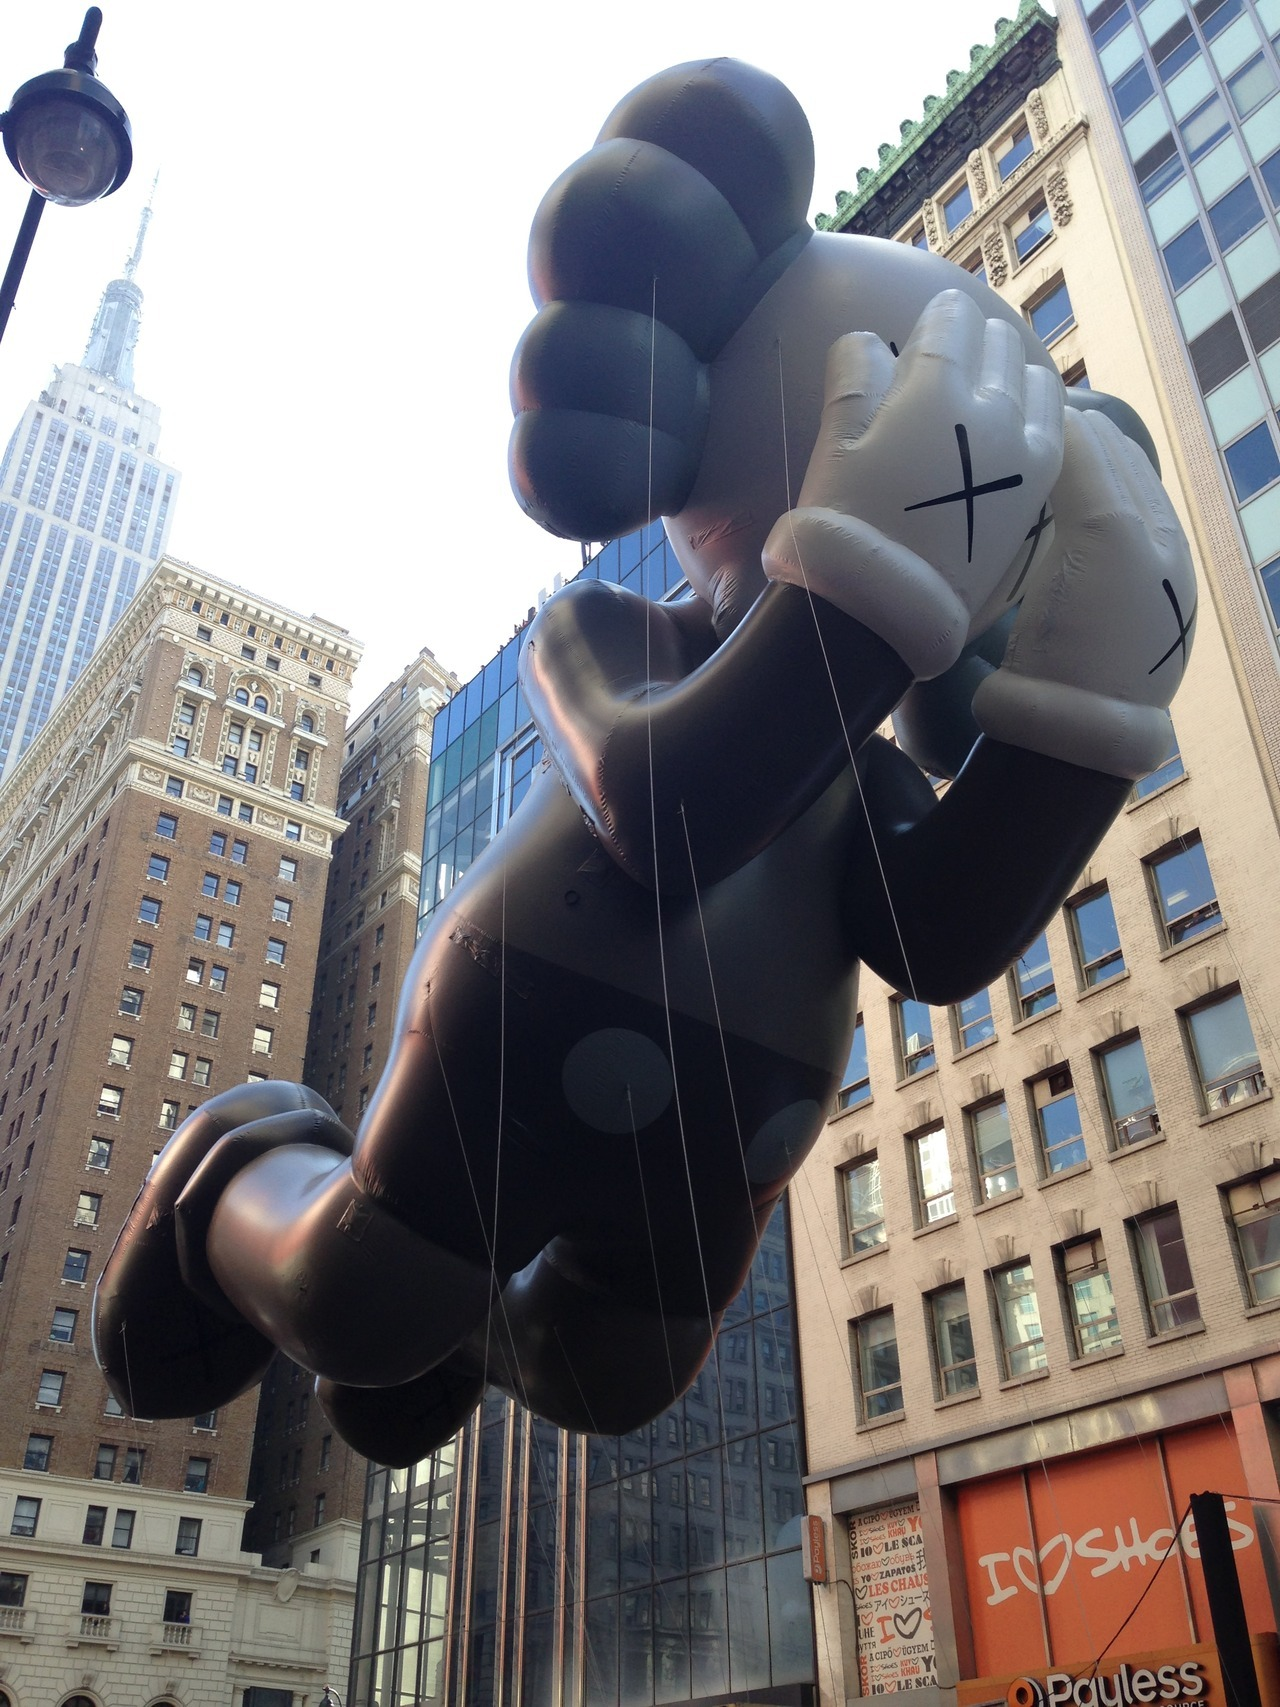 KAWS Companion!  We saw you floating Fifth Avenue in the Macy's Day Parade.  No need to be bashful.